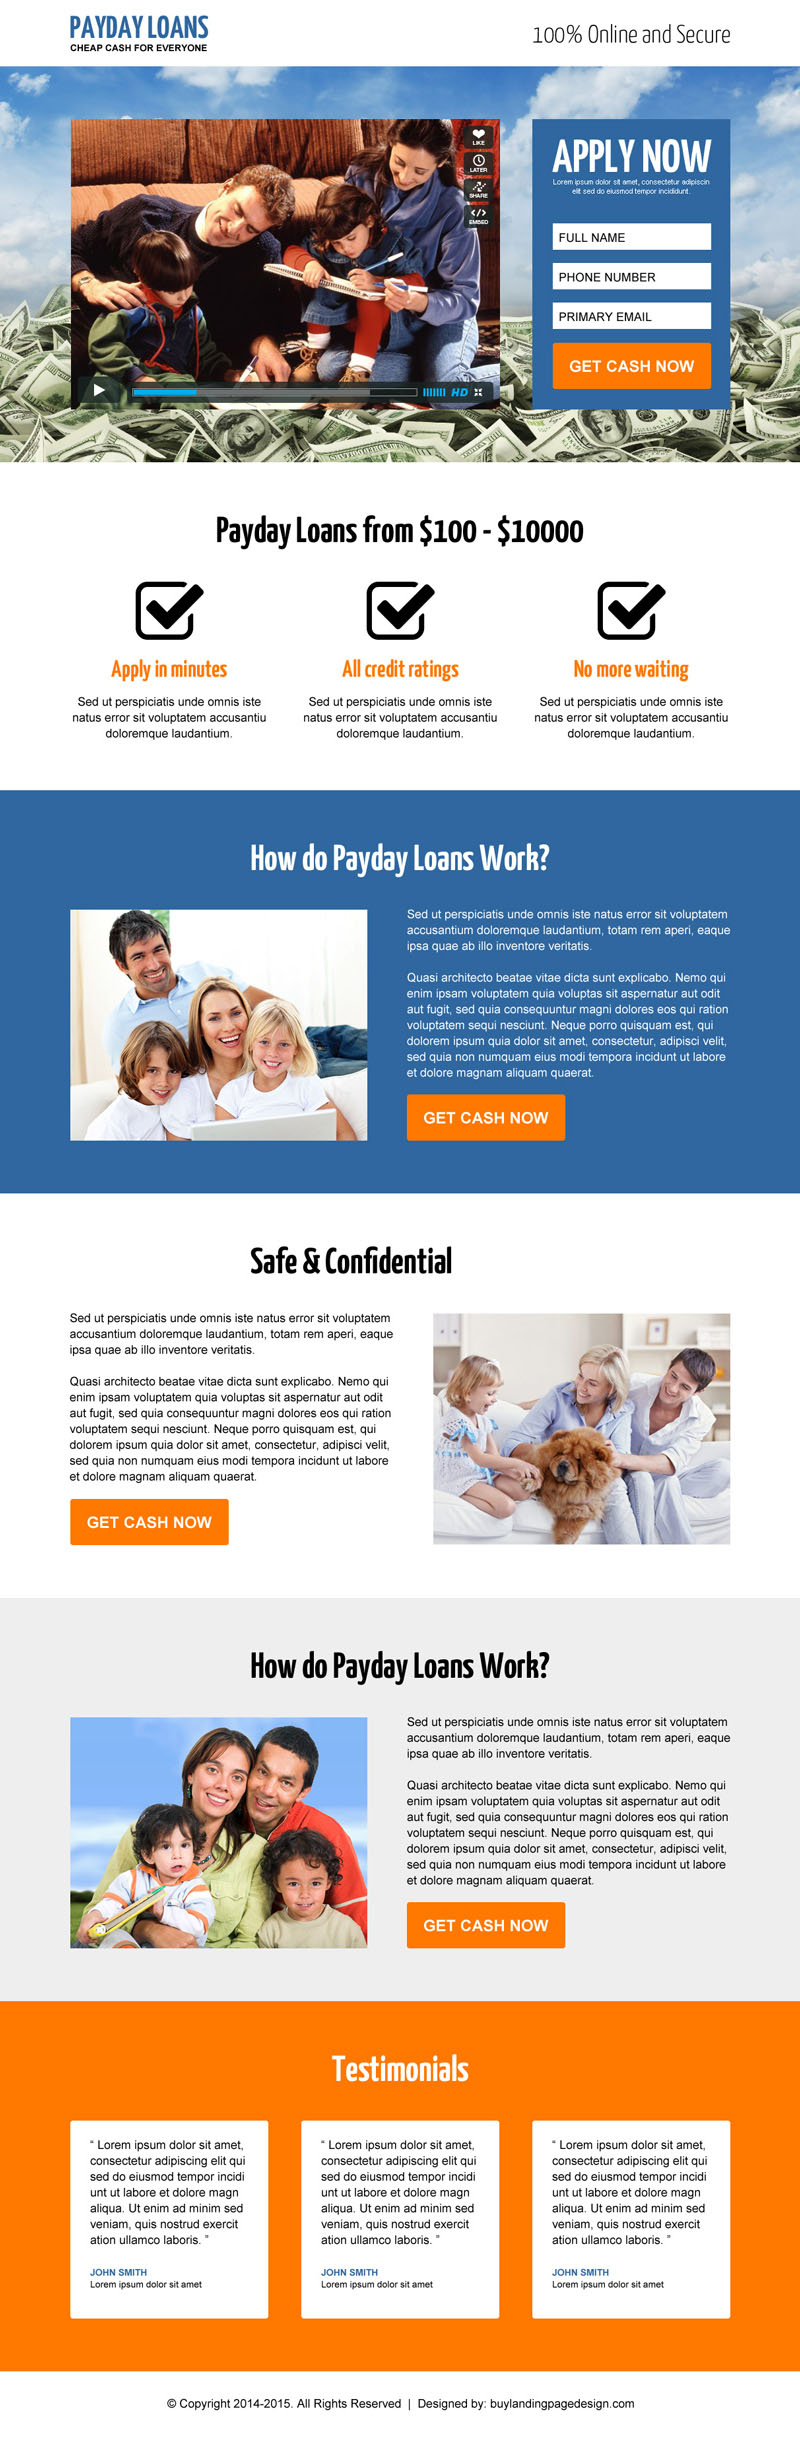 best payday loan video lead capture landing page design template https://www.buylandingpagedesign.com/buy/best-payday-loan-video-lead-capture-landing-page-design-template/1426